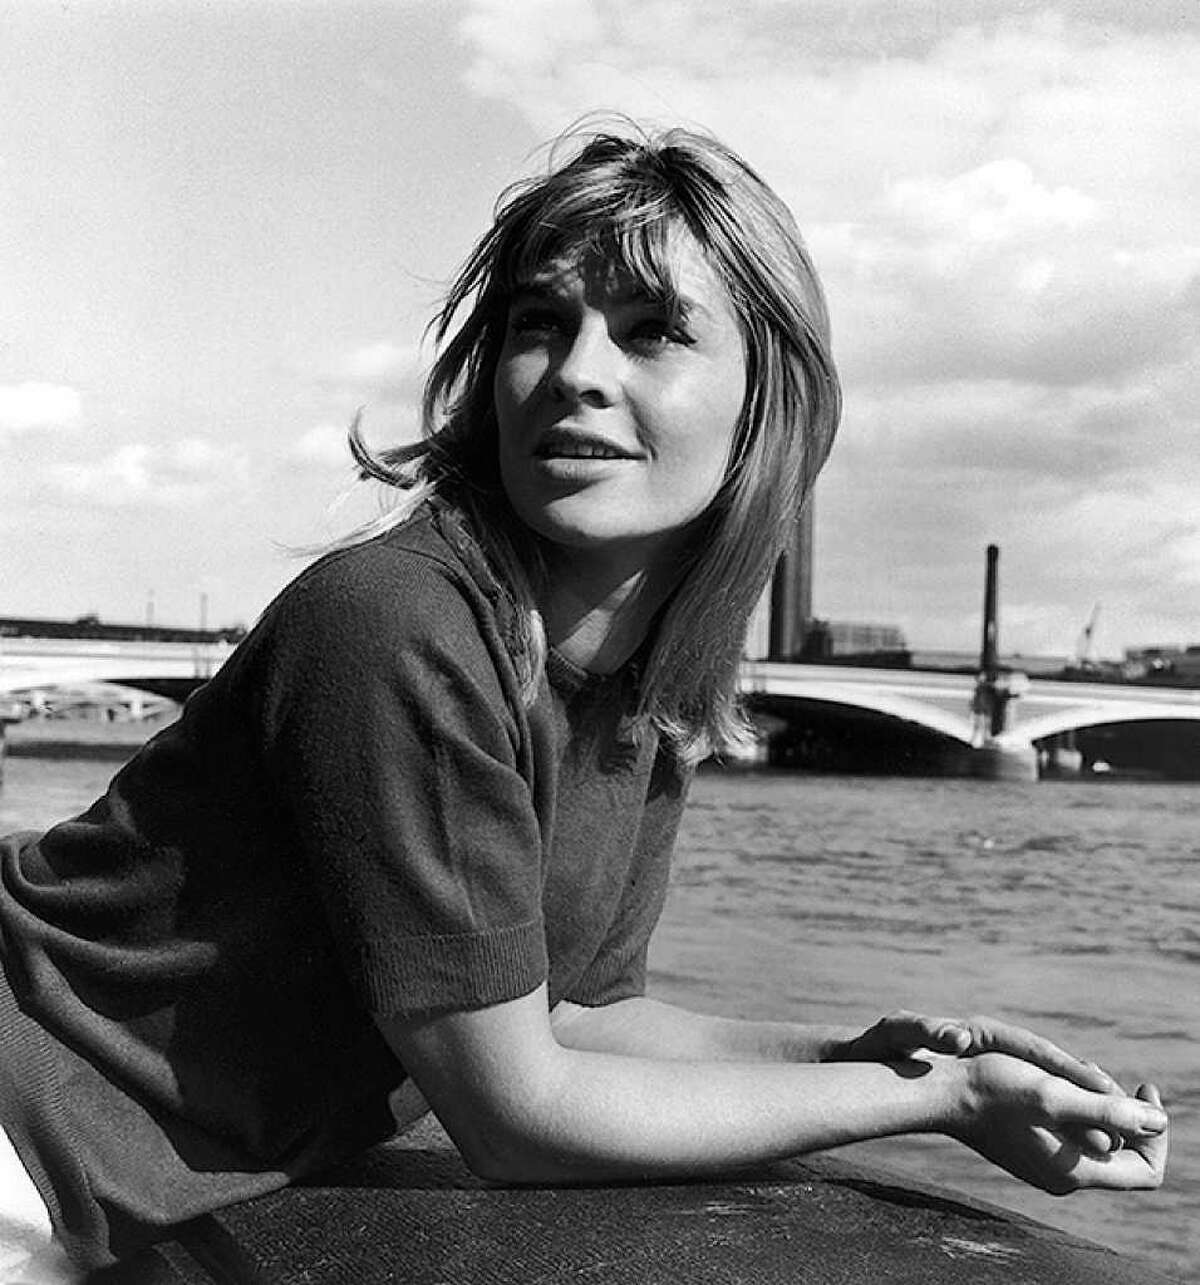 We begin our third installment of actresses through the years with a true classic, Julie Christie, seen next to the river Thames in London on Aug. 10, 1963, at the tender age of 22.